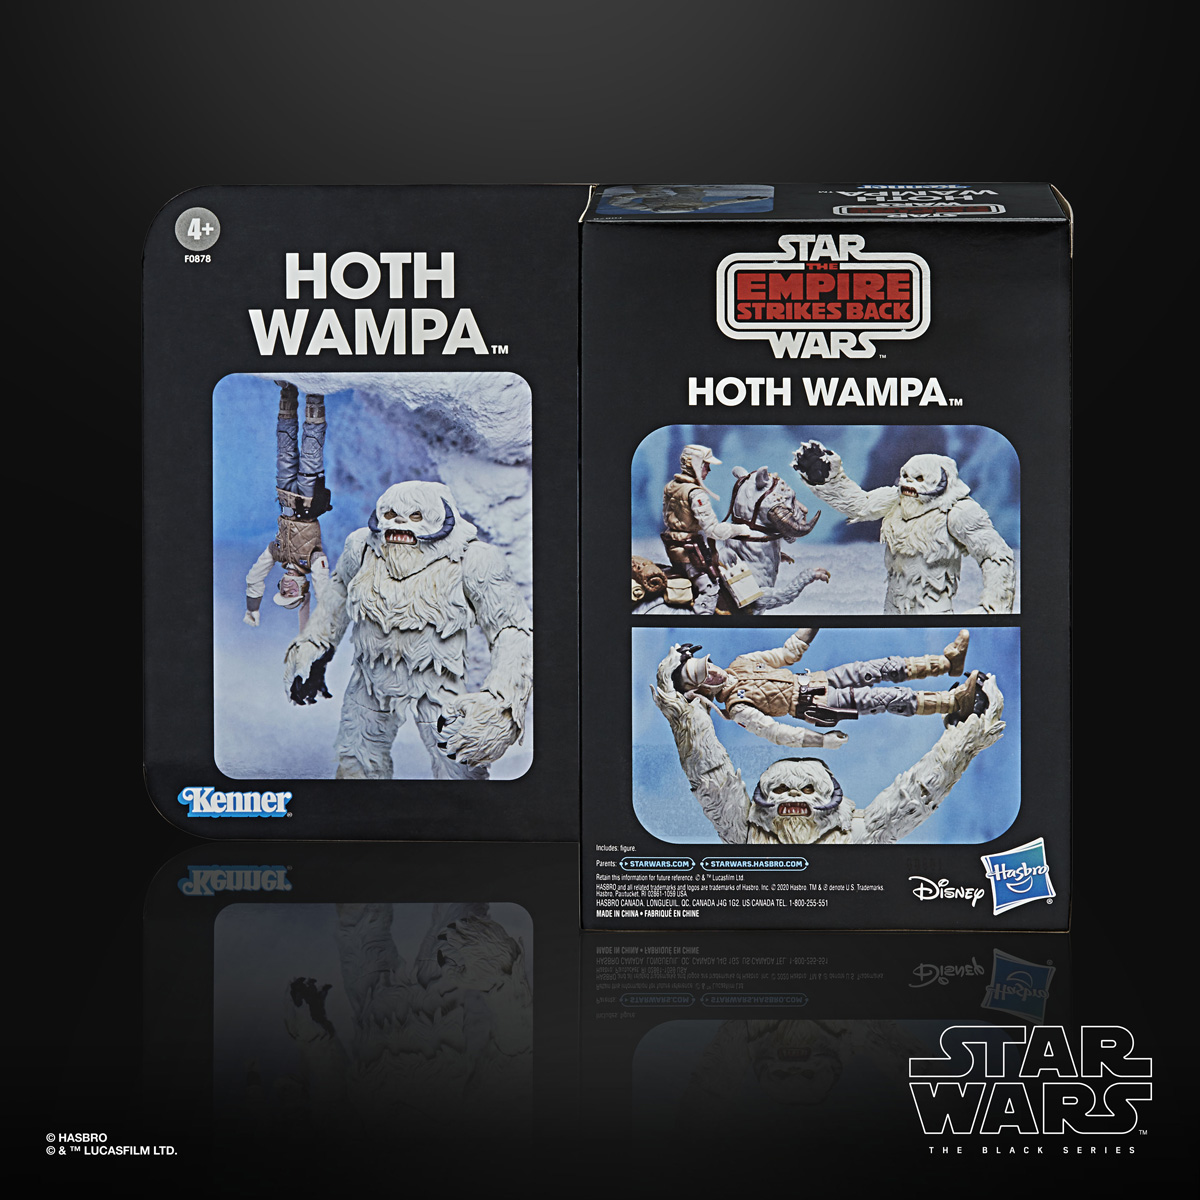 star-wars-the-black-series-6-inch-scale-hoth-wampa-figure-pckging-1